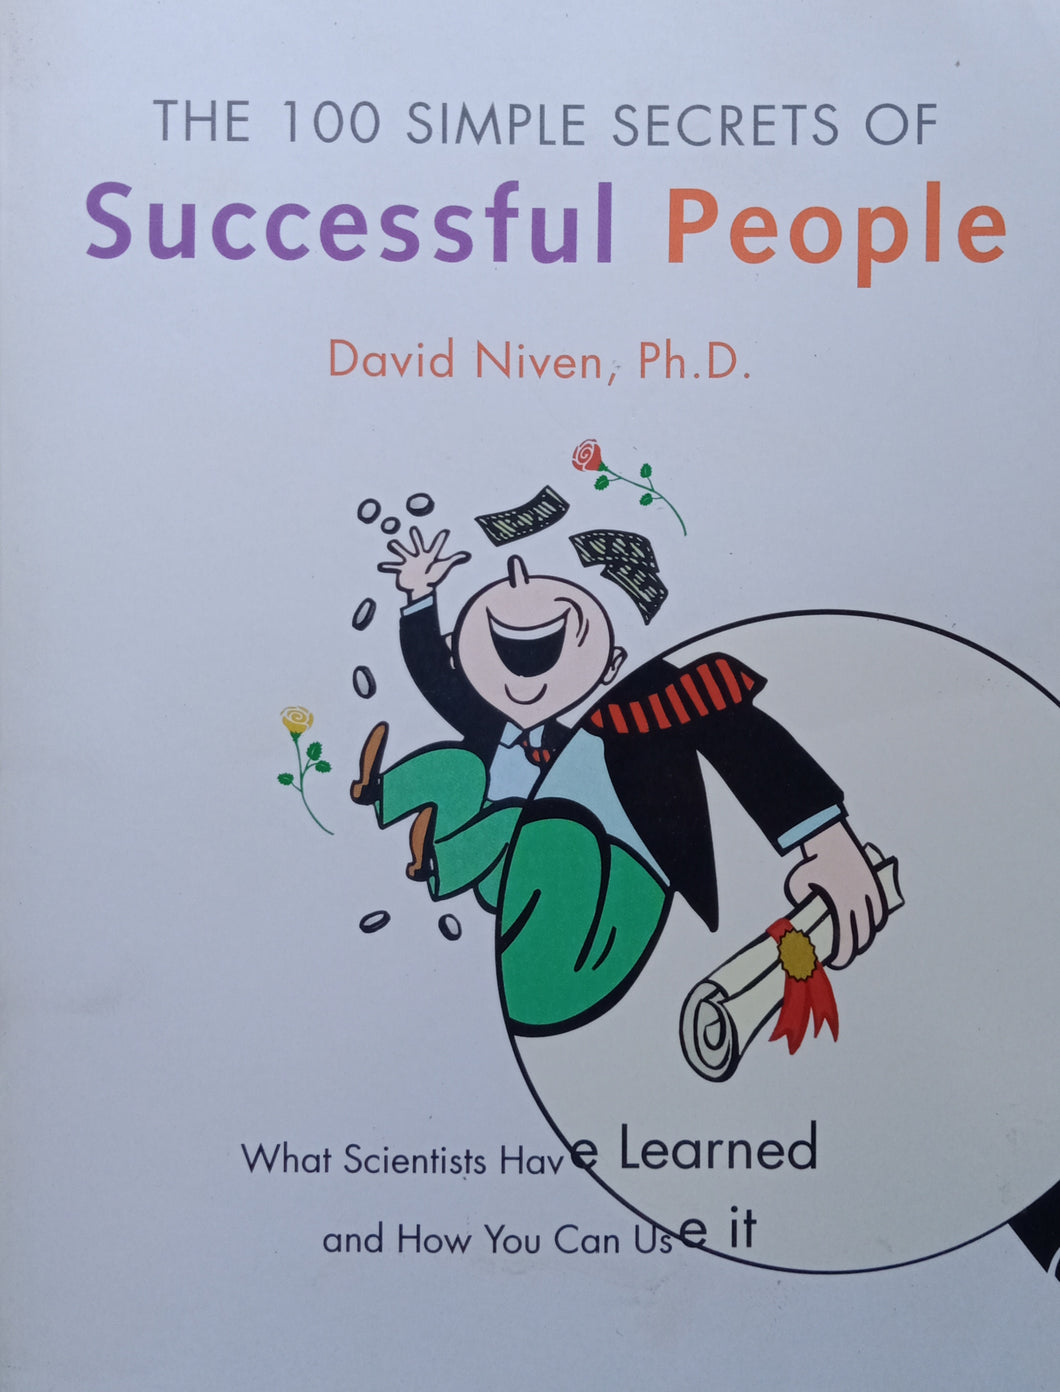 The 100 Simple Secrets Of Succeful People by David Niven